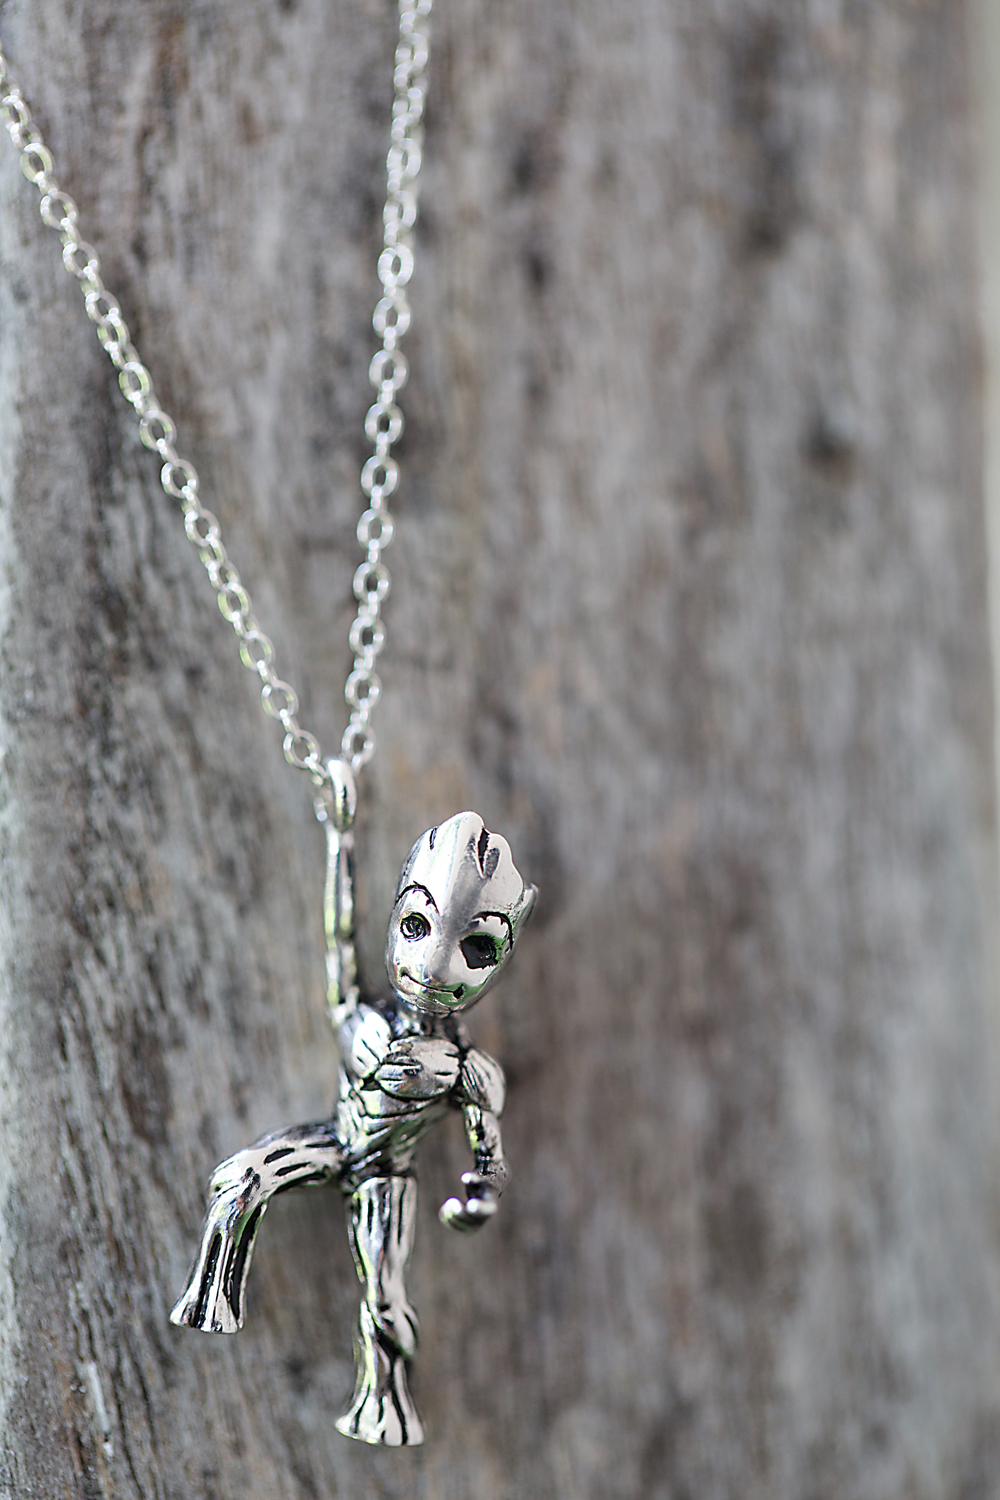 013_necklace_groot_beauty1s.jpg